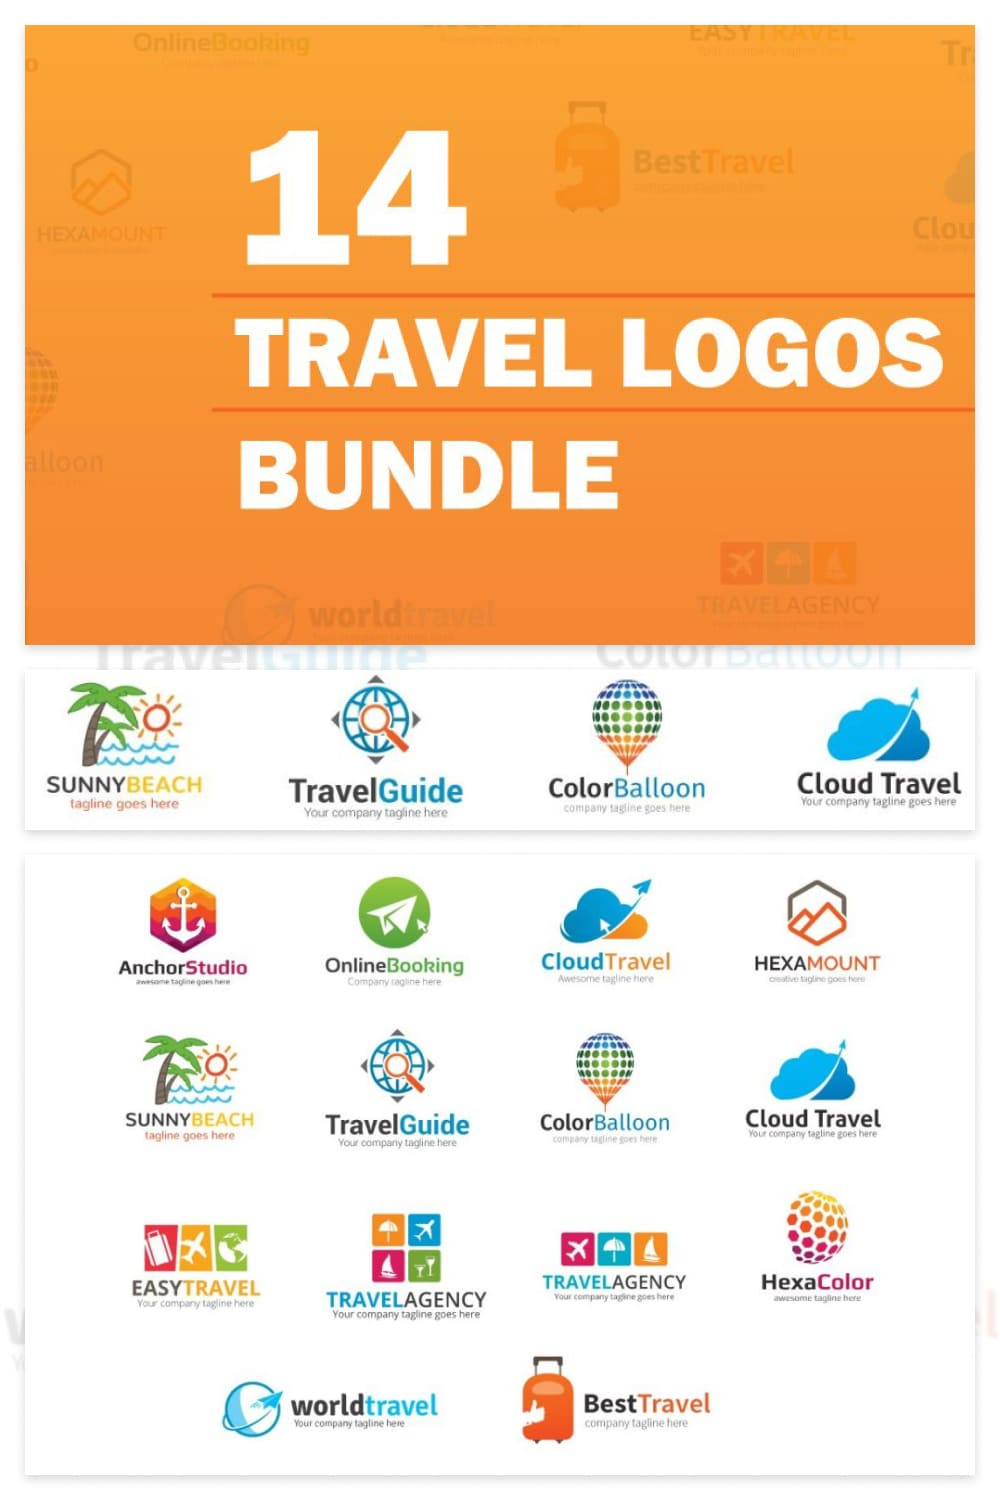 Each logo contains an illustration and a font in a color scheme with graphics.